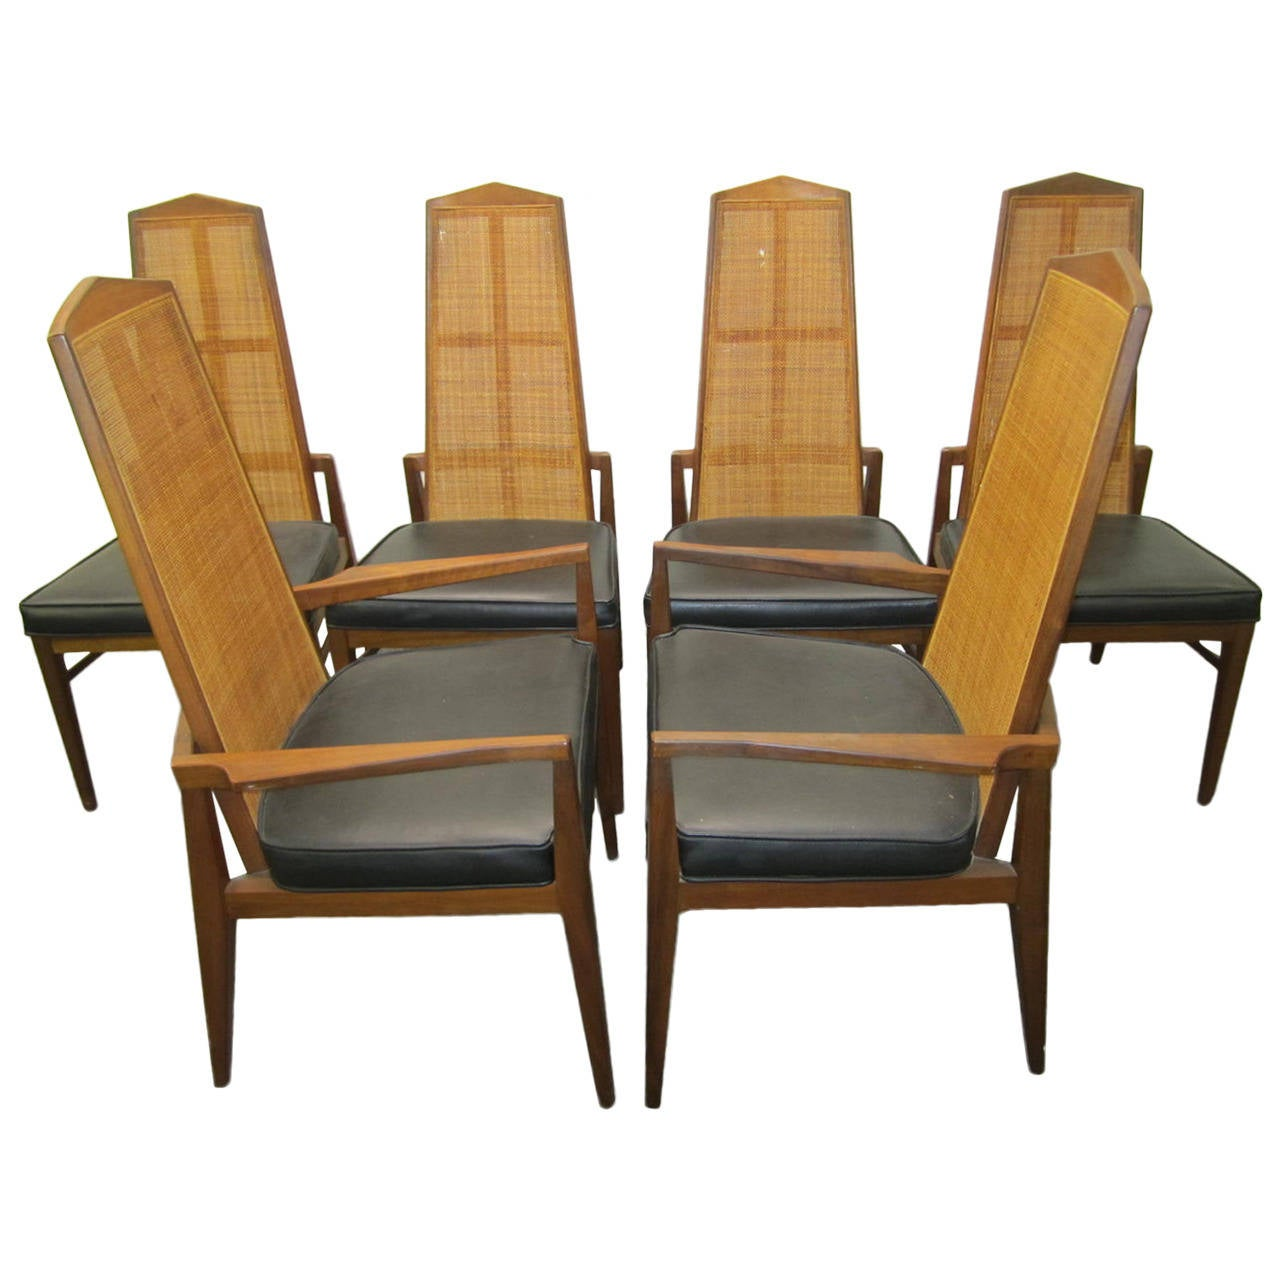 Six Walnut Foster and McDavid Cane Back Dining Chairs Mid